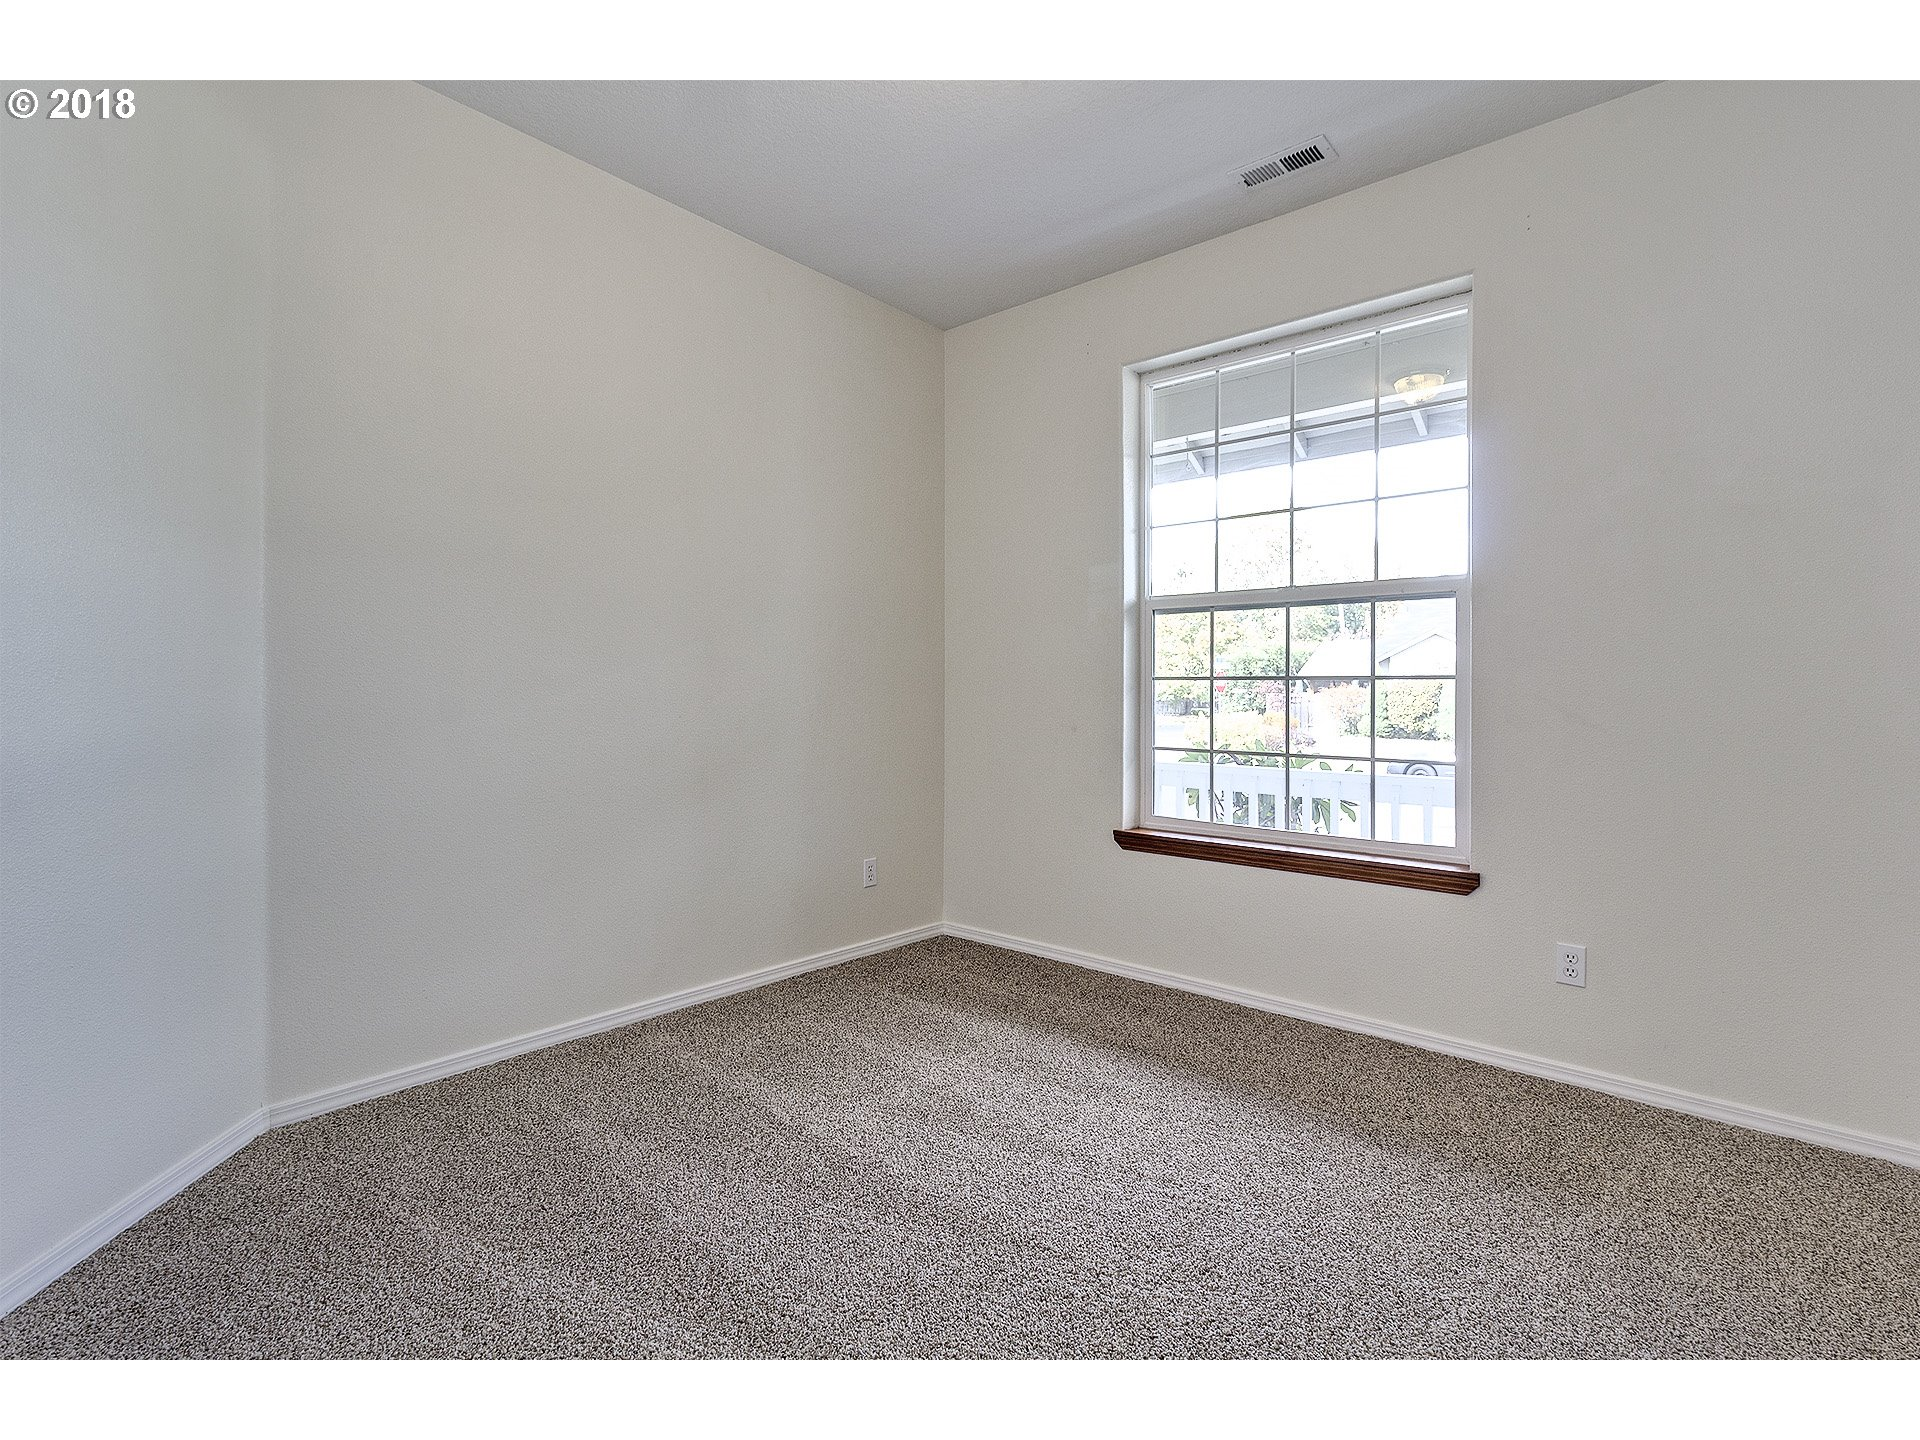 1496 sq. ft 3 bedrooms 2 bathrooms  House For Sale,Hillsboro, OR